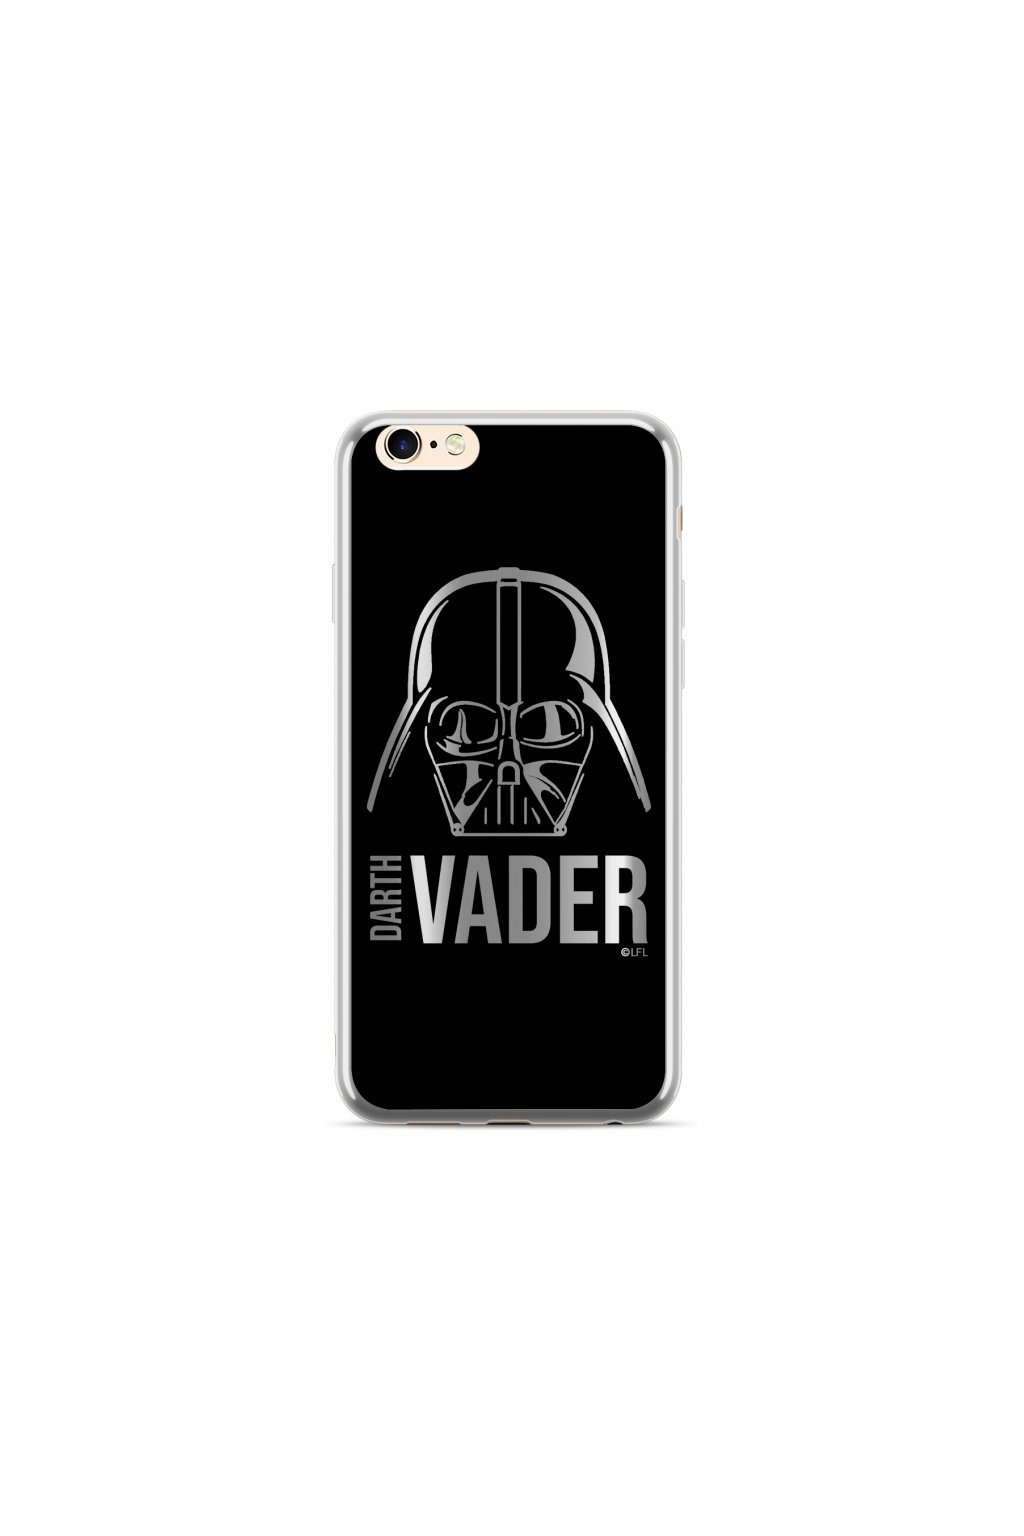 2366 star wars kryt pro iphone 6 7 8 plus darth vader